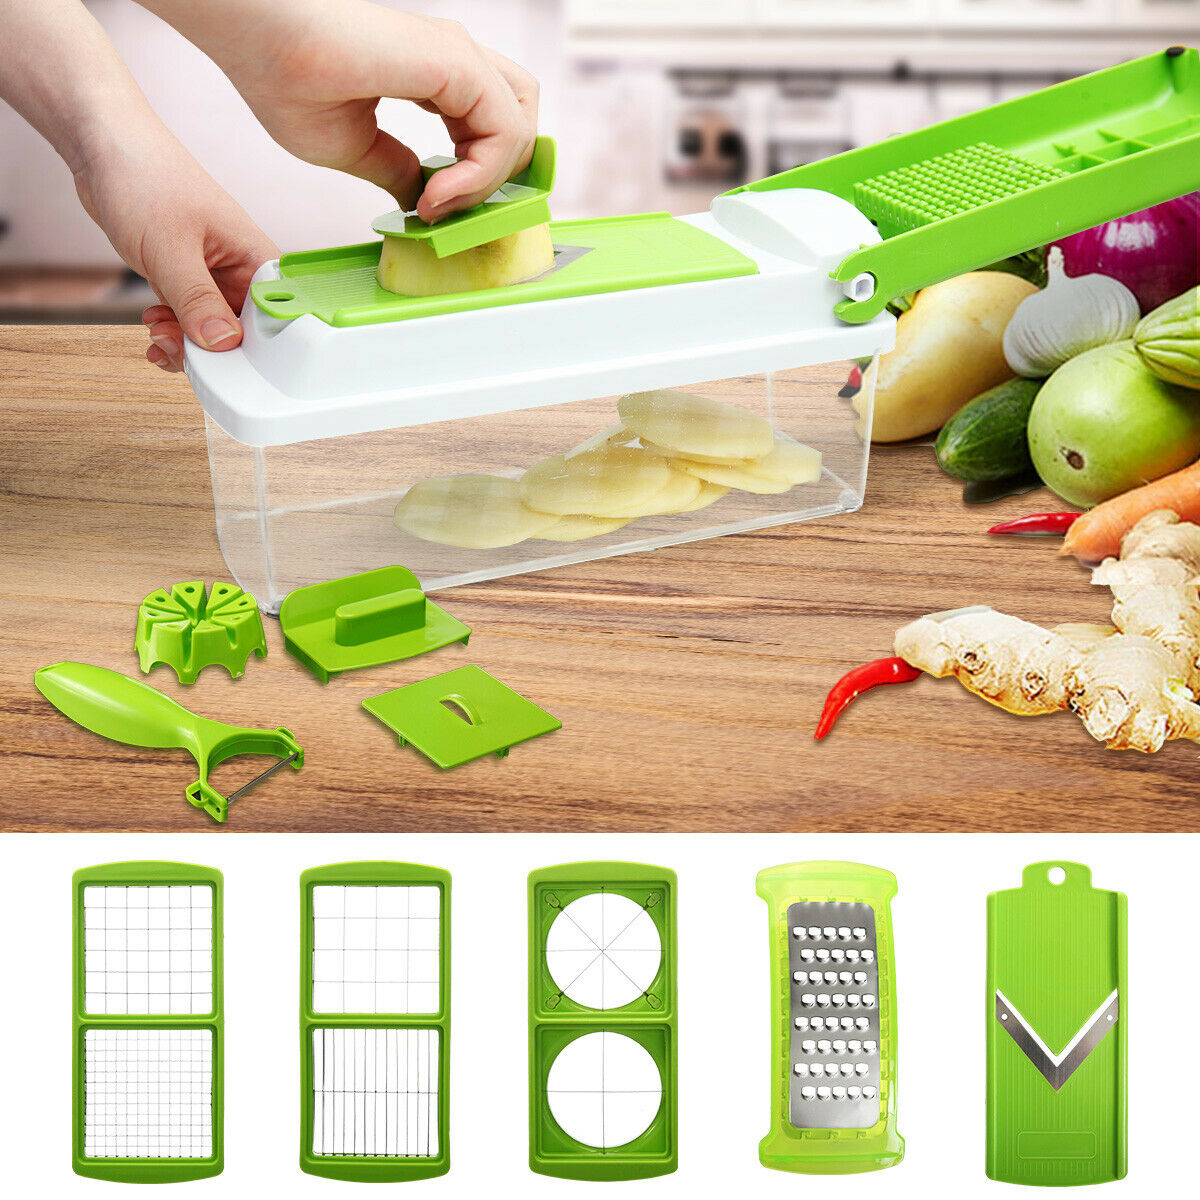 12 PC Kitchen Super Slicer Plus Vegetable Fruit Peeler Dicer Cutter Chopper